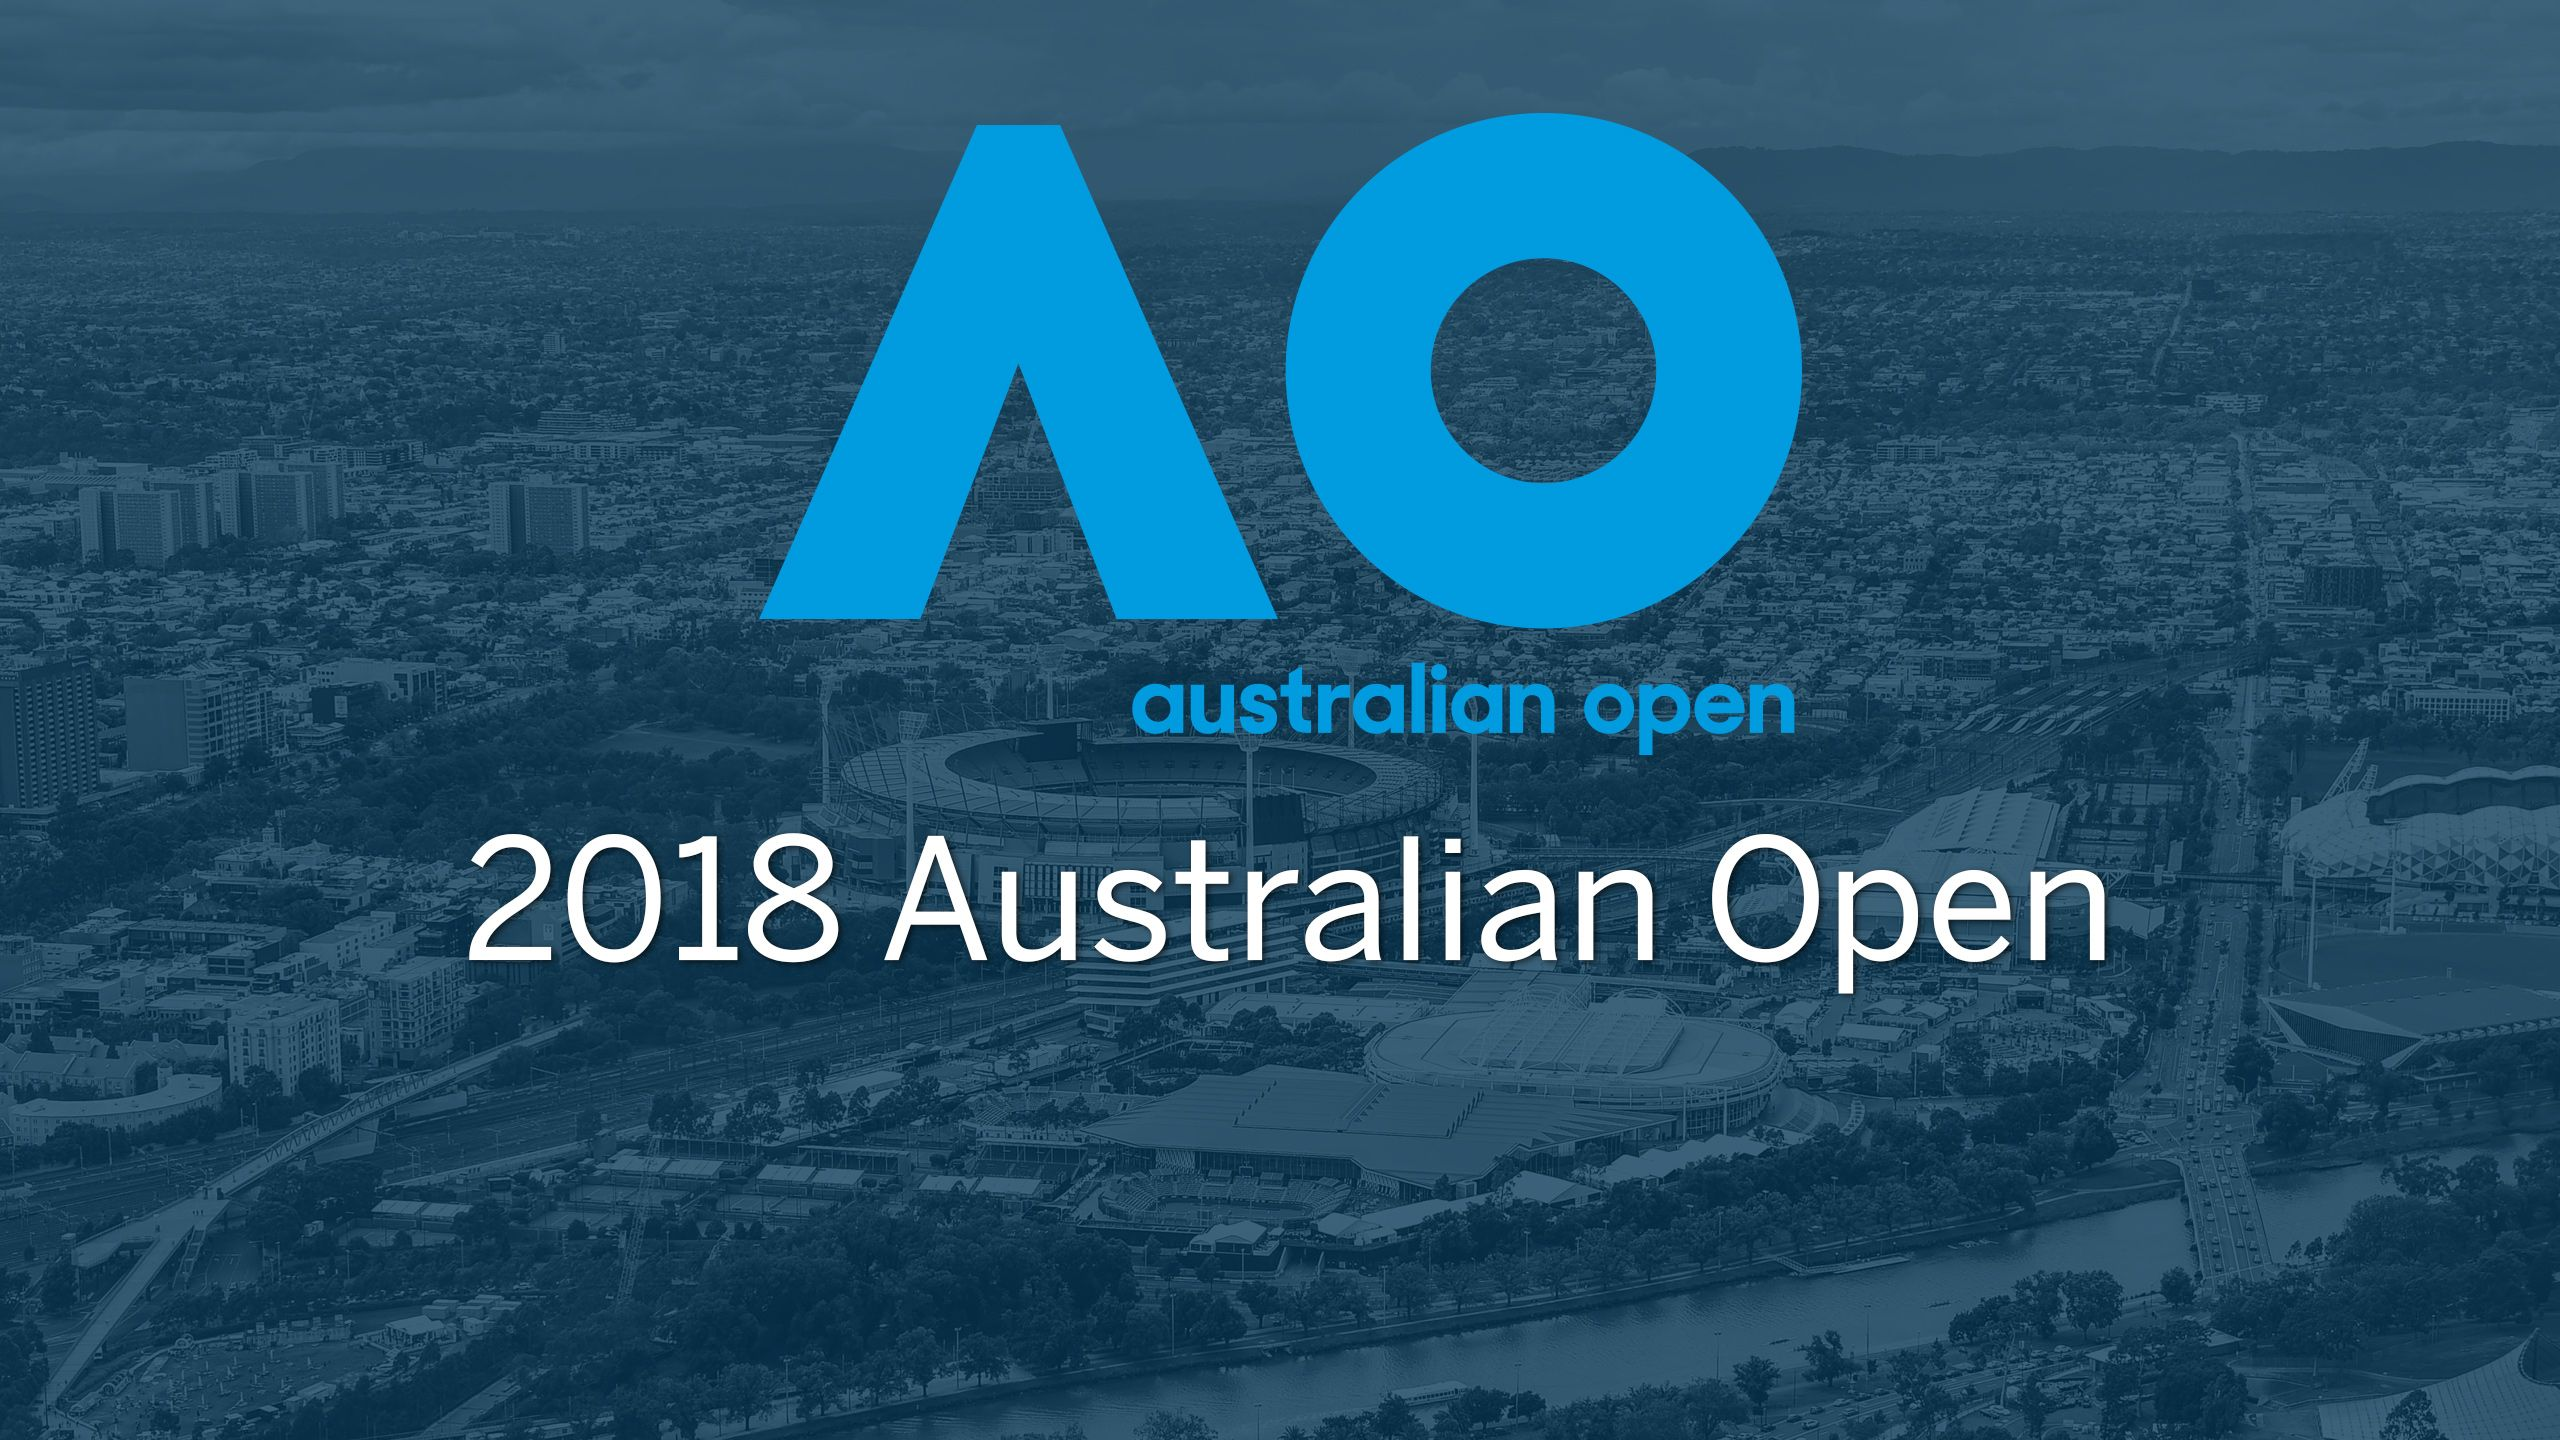 2018 Australian Open presented by Franklin Templeton Investments (First Round)